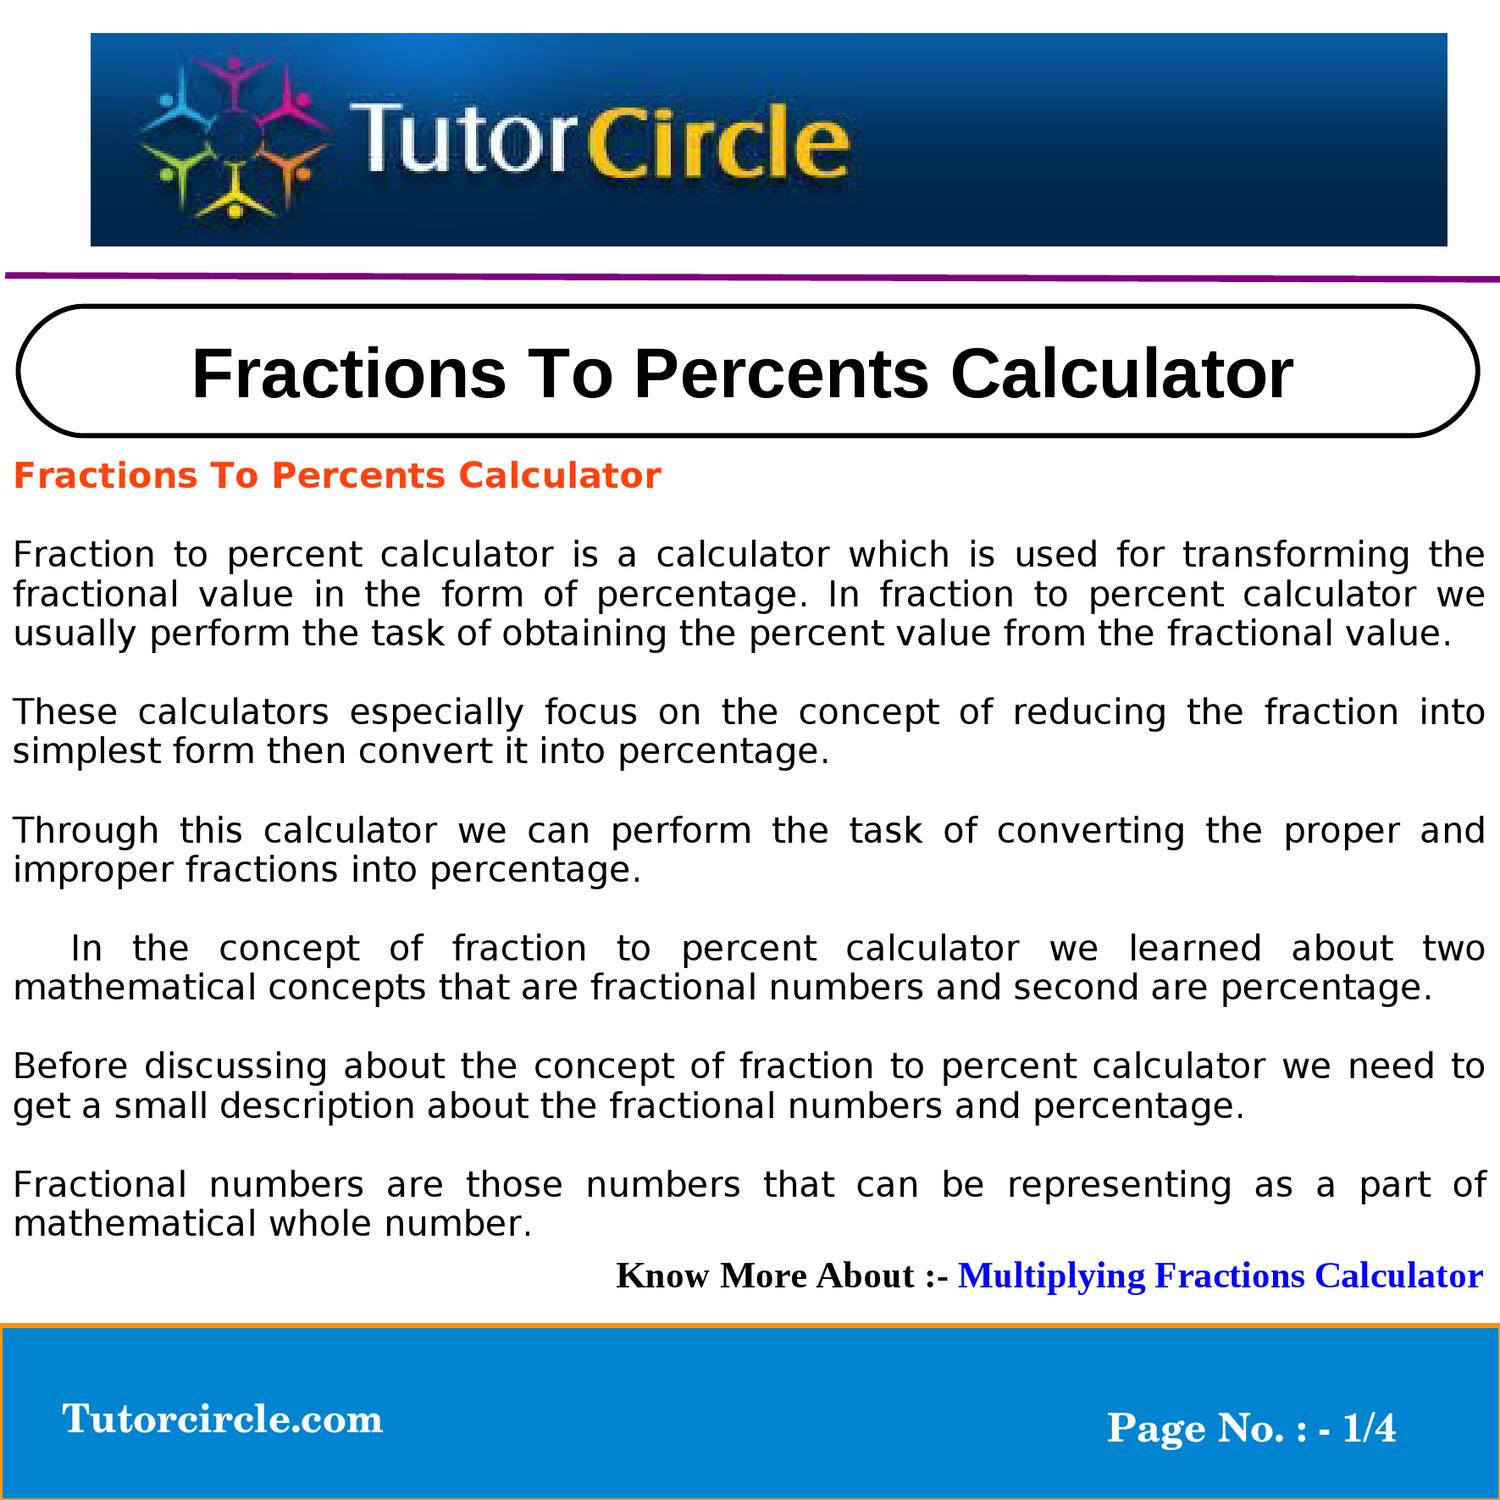 simplest form multiplication calculator  Fractions To Percents Calculator by circle team - issuu